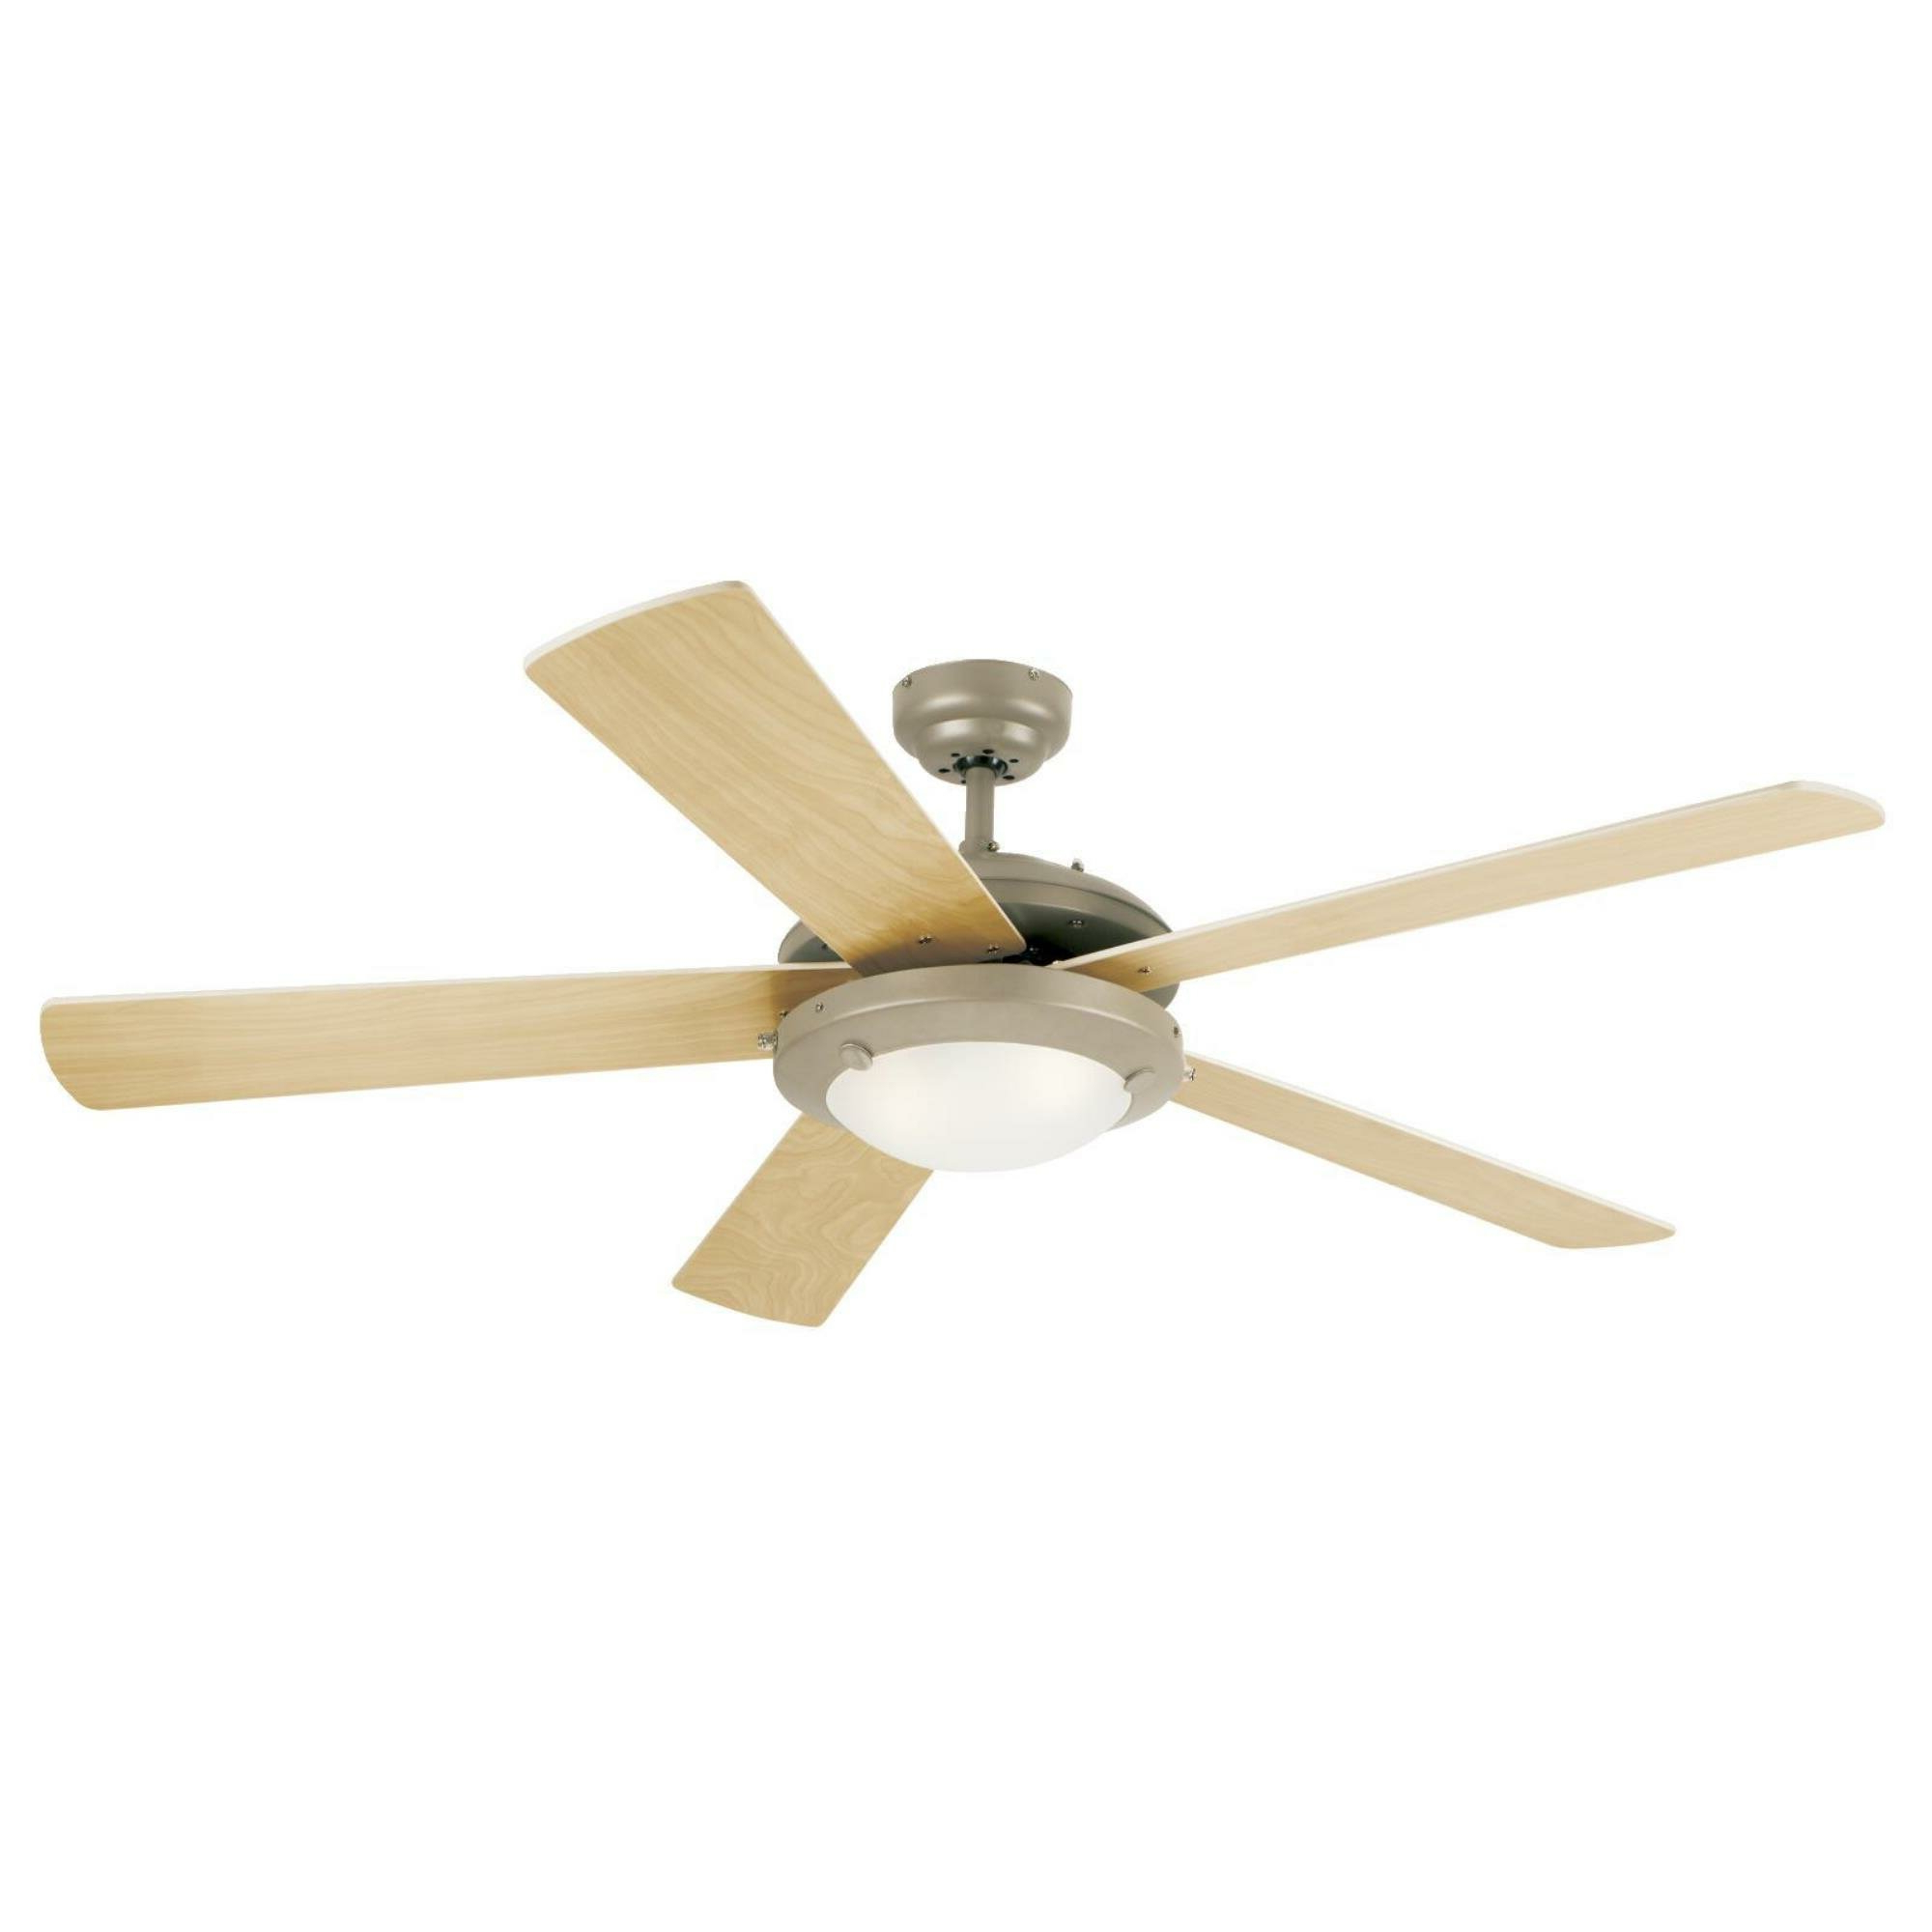 "52"" Creslow 5 Blade Ceiling Fan, Light Kit Included Intended For Fashionable Beltran 5 Blade Ceiling Fans (View 5 of 20)"